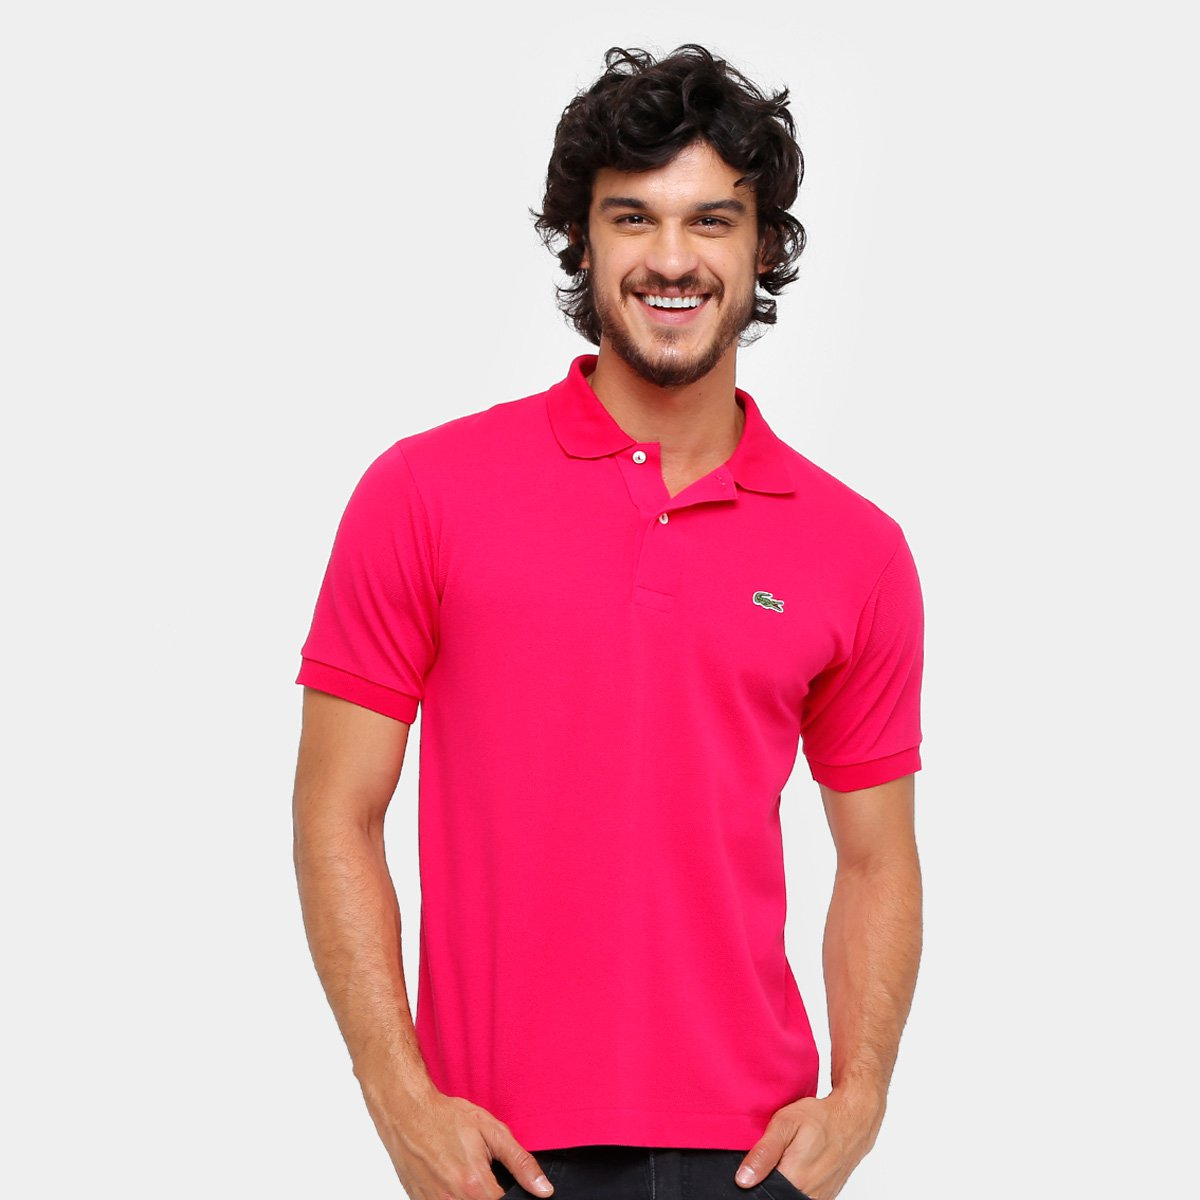 Camisa Polo Lacoste Piquet Original Fit Masculina - Pink - Compre ... acbaca8893